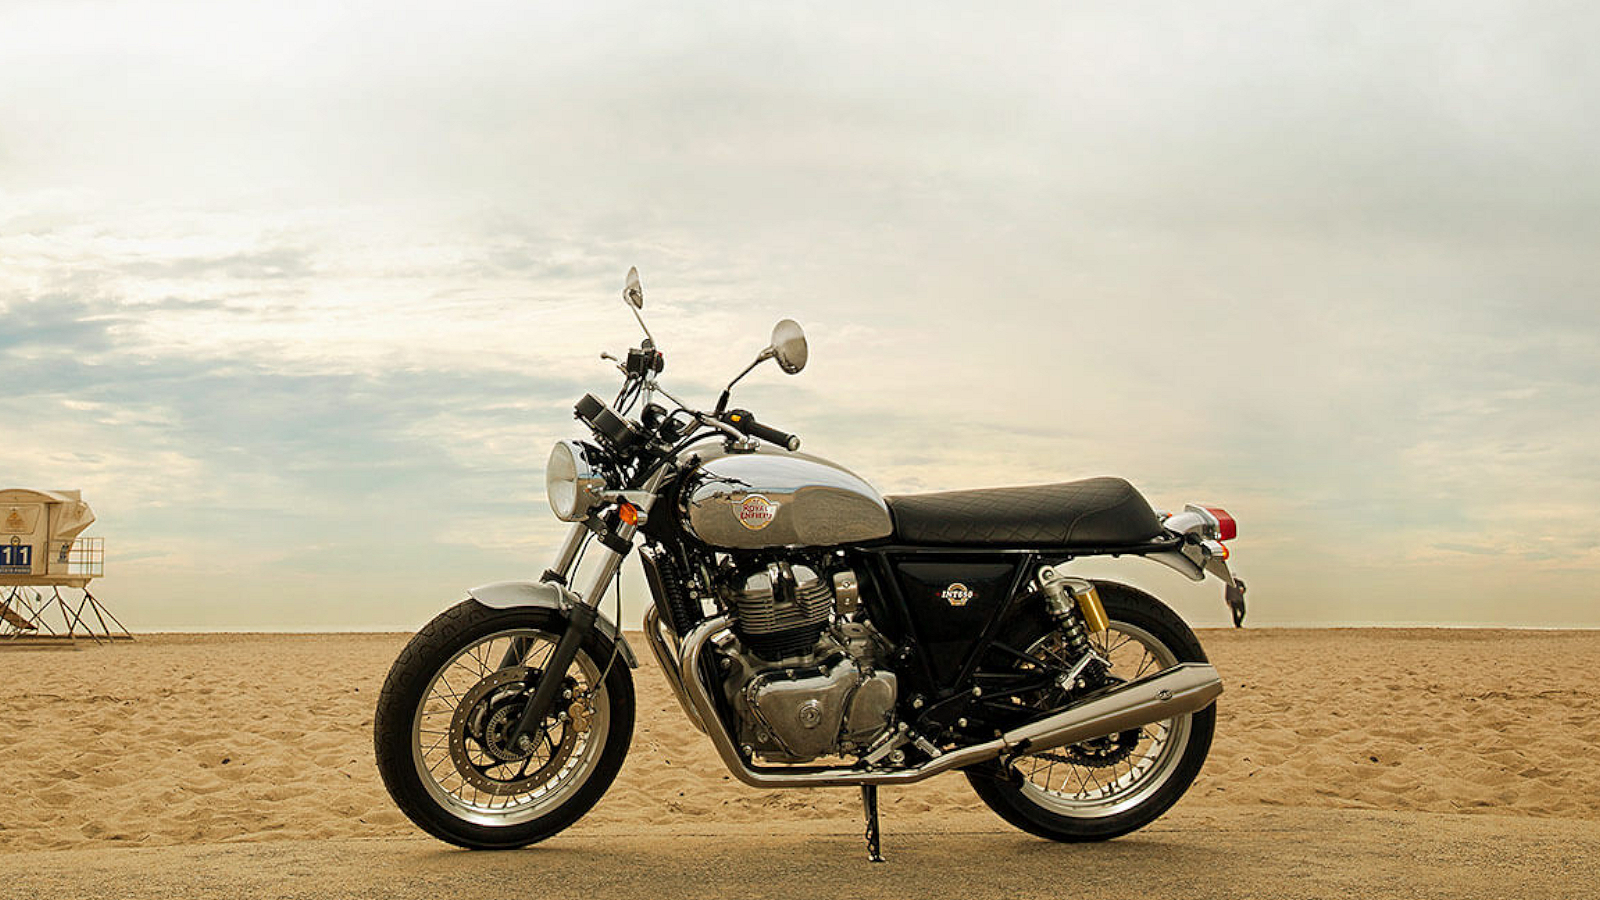 2018 Royal Enfield Interceptor 650 Pictures, Photos